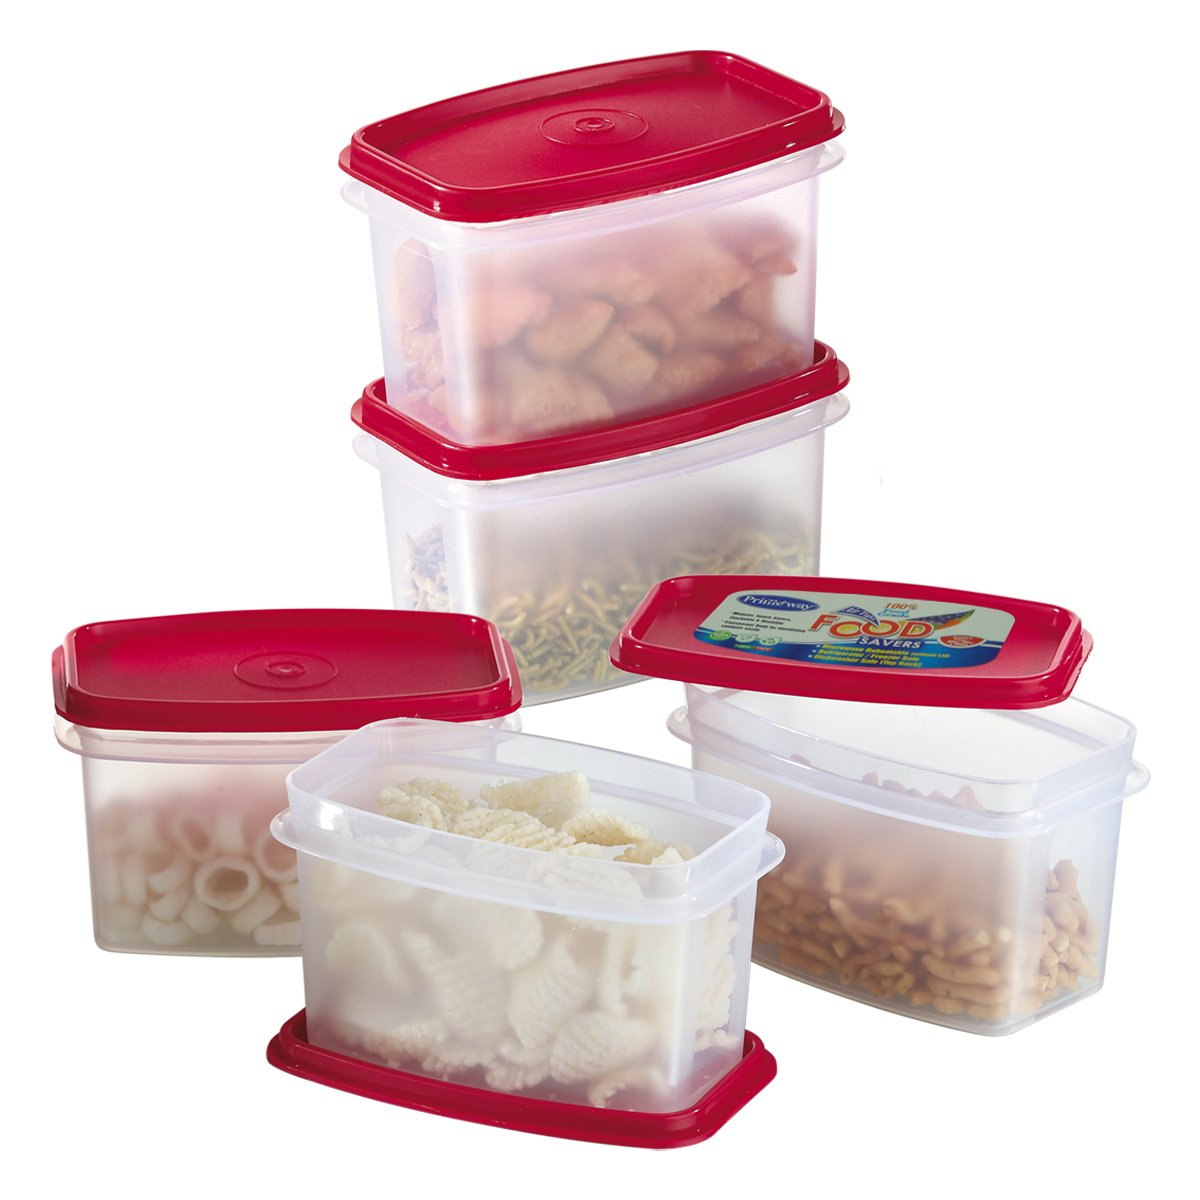 Kitchen Storage Plastic Containers Part - 39: Buy Primeway Modular Kitchen Food Savers Plastic Storage Containers, 750ml,  5 Pcs Set, Red Online At Low Prices In India - Amazon.in